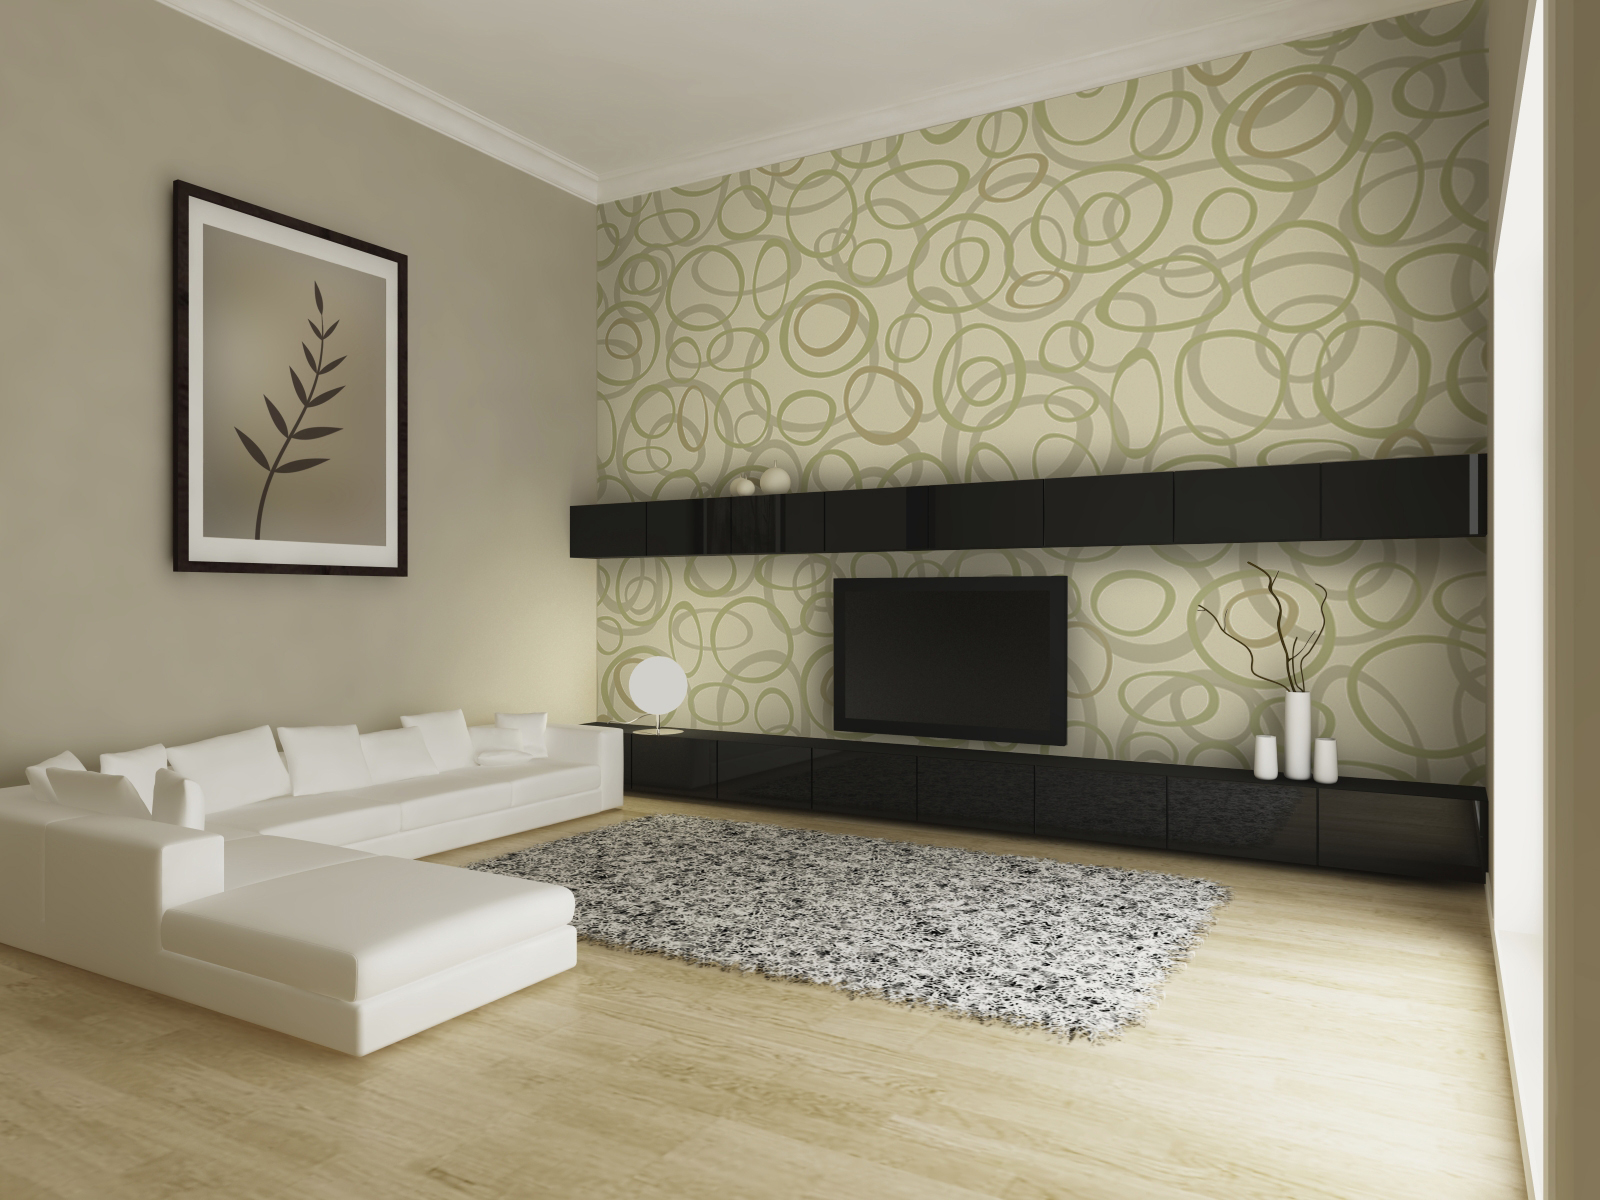 Interior Wallpaper Designs Nice Design Interior Wallpaper Design On Interior Ideas